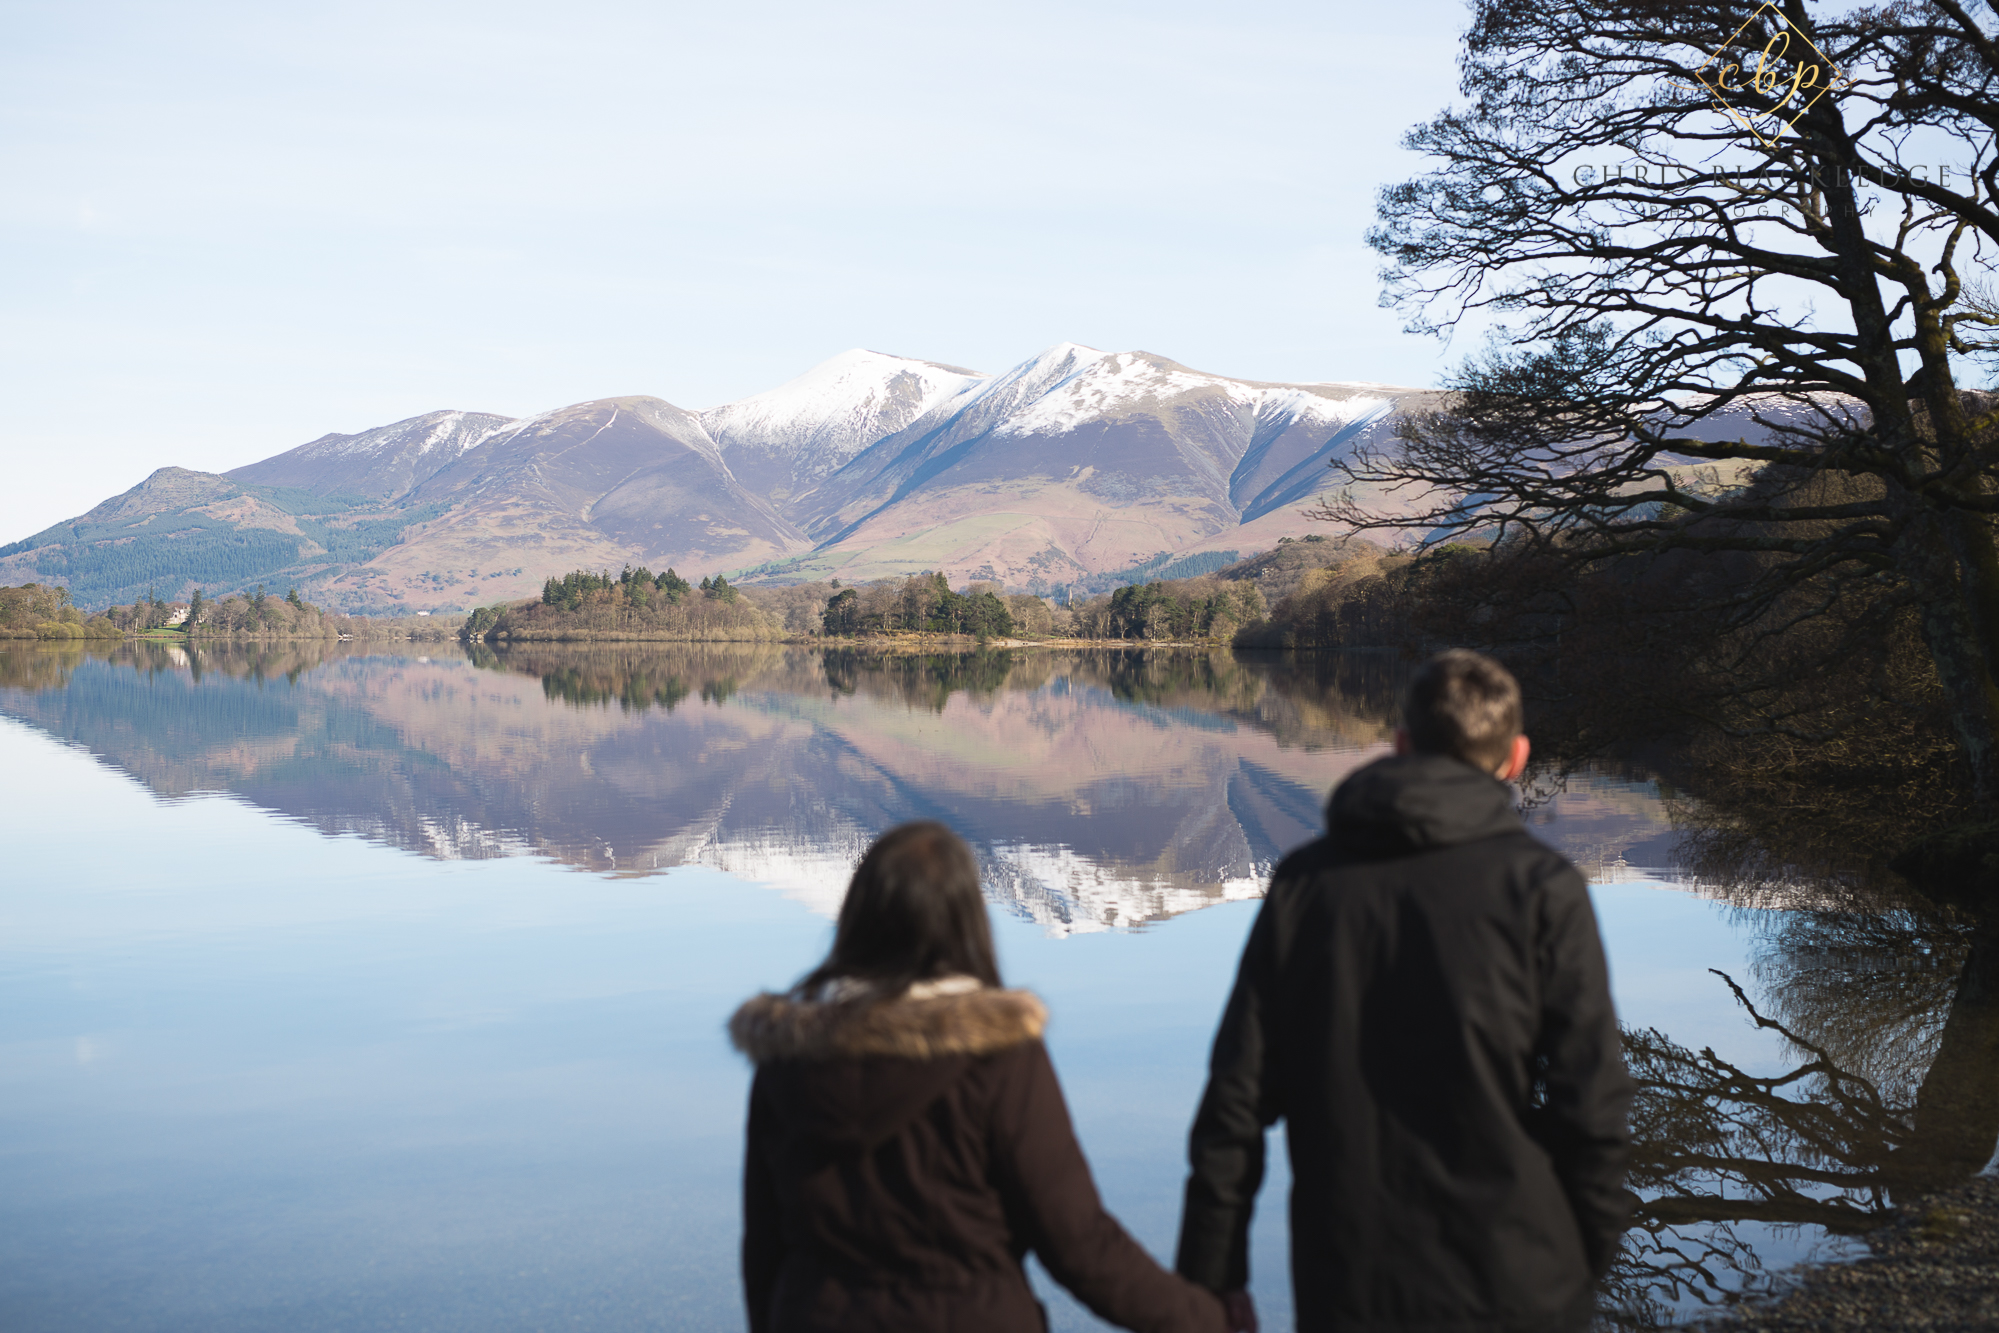 lake_district_wedding_photographer16.jpg